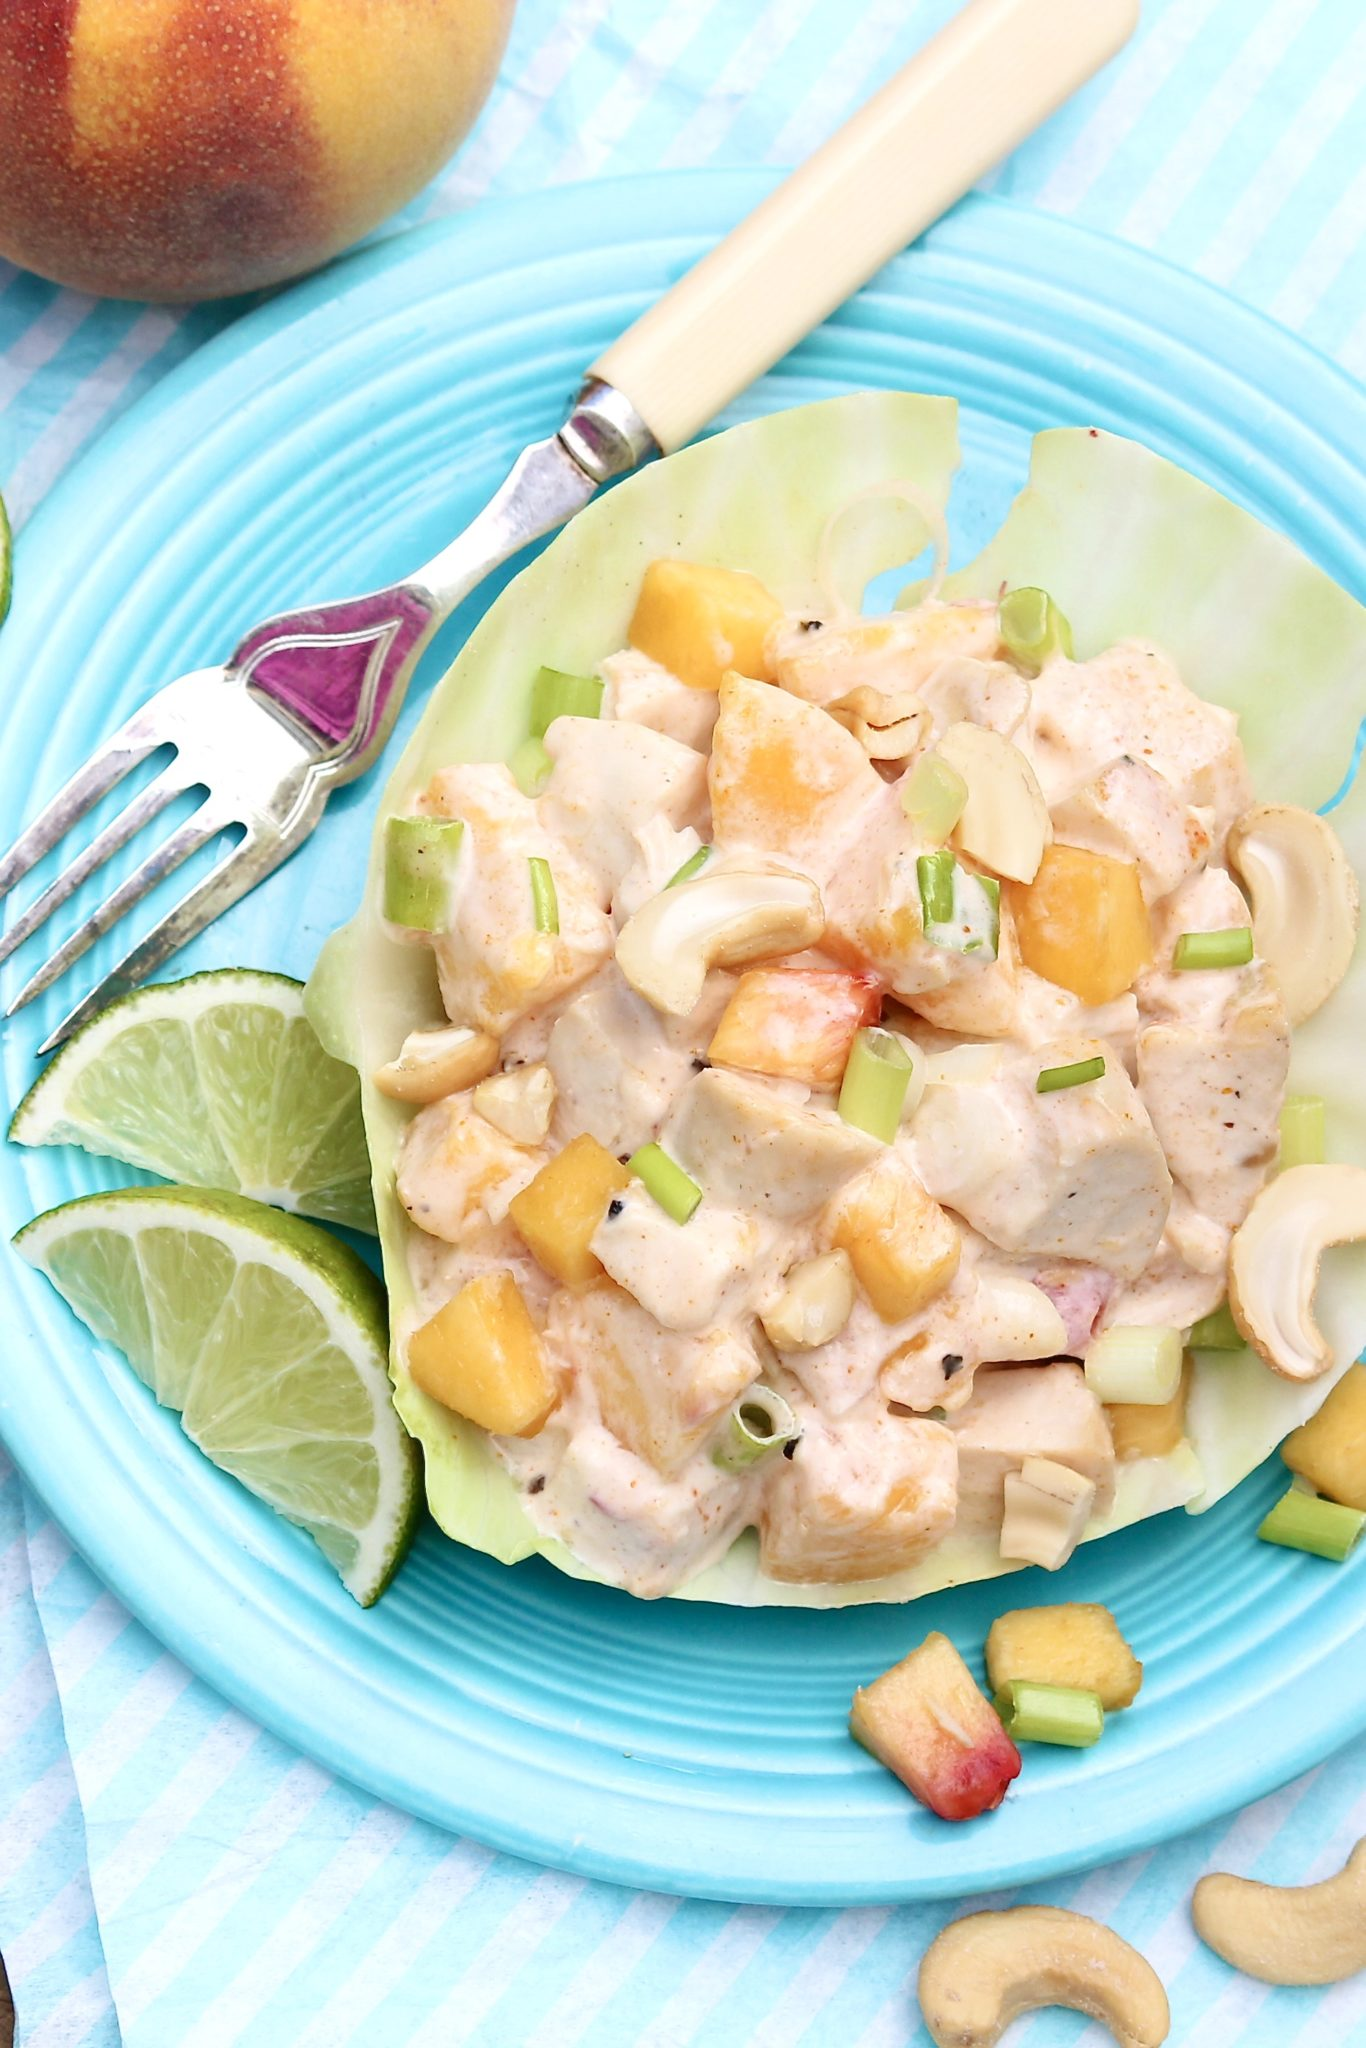 Several of the ingredients in this fresh-tasting chicken salad may be unexpected, but the combination really works! For added ease, leftover grilled, baked, or rotisserie chicken may be used.